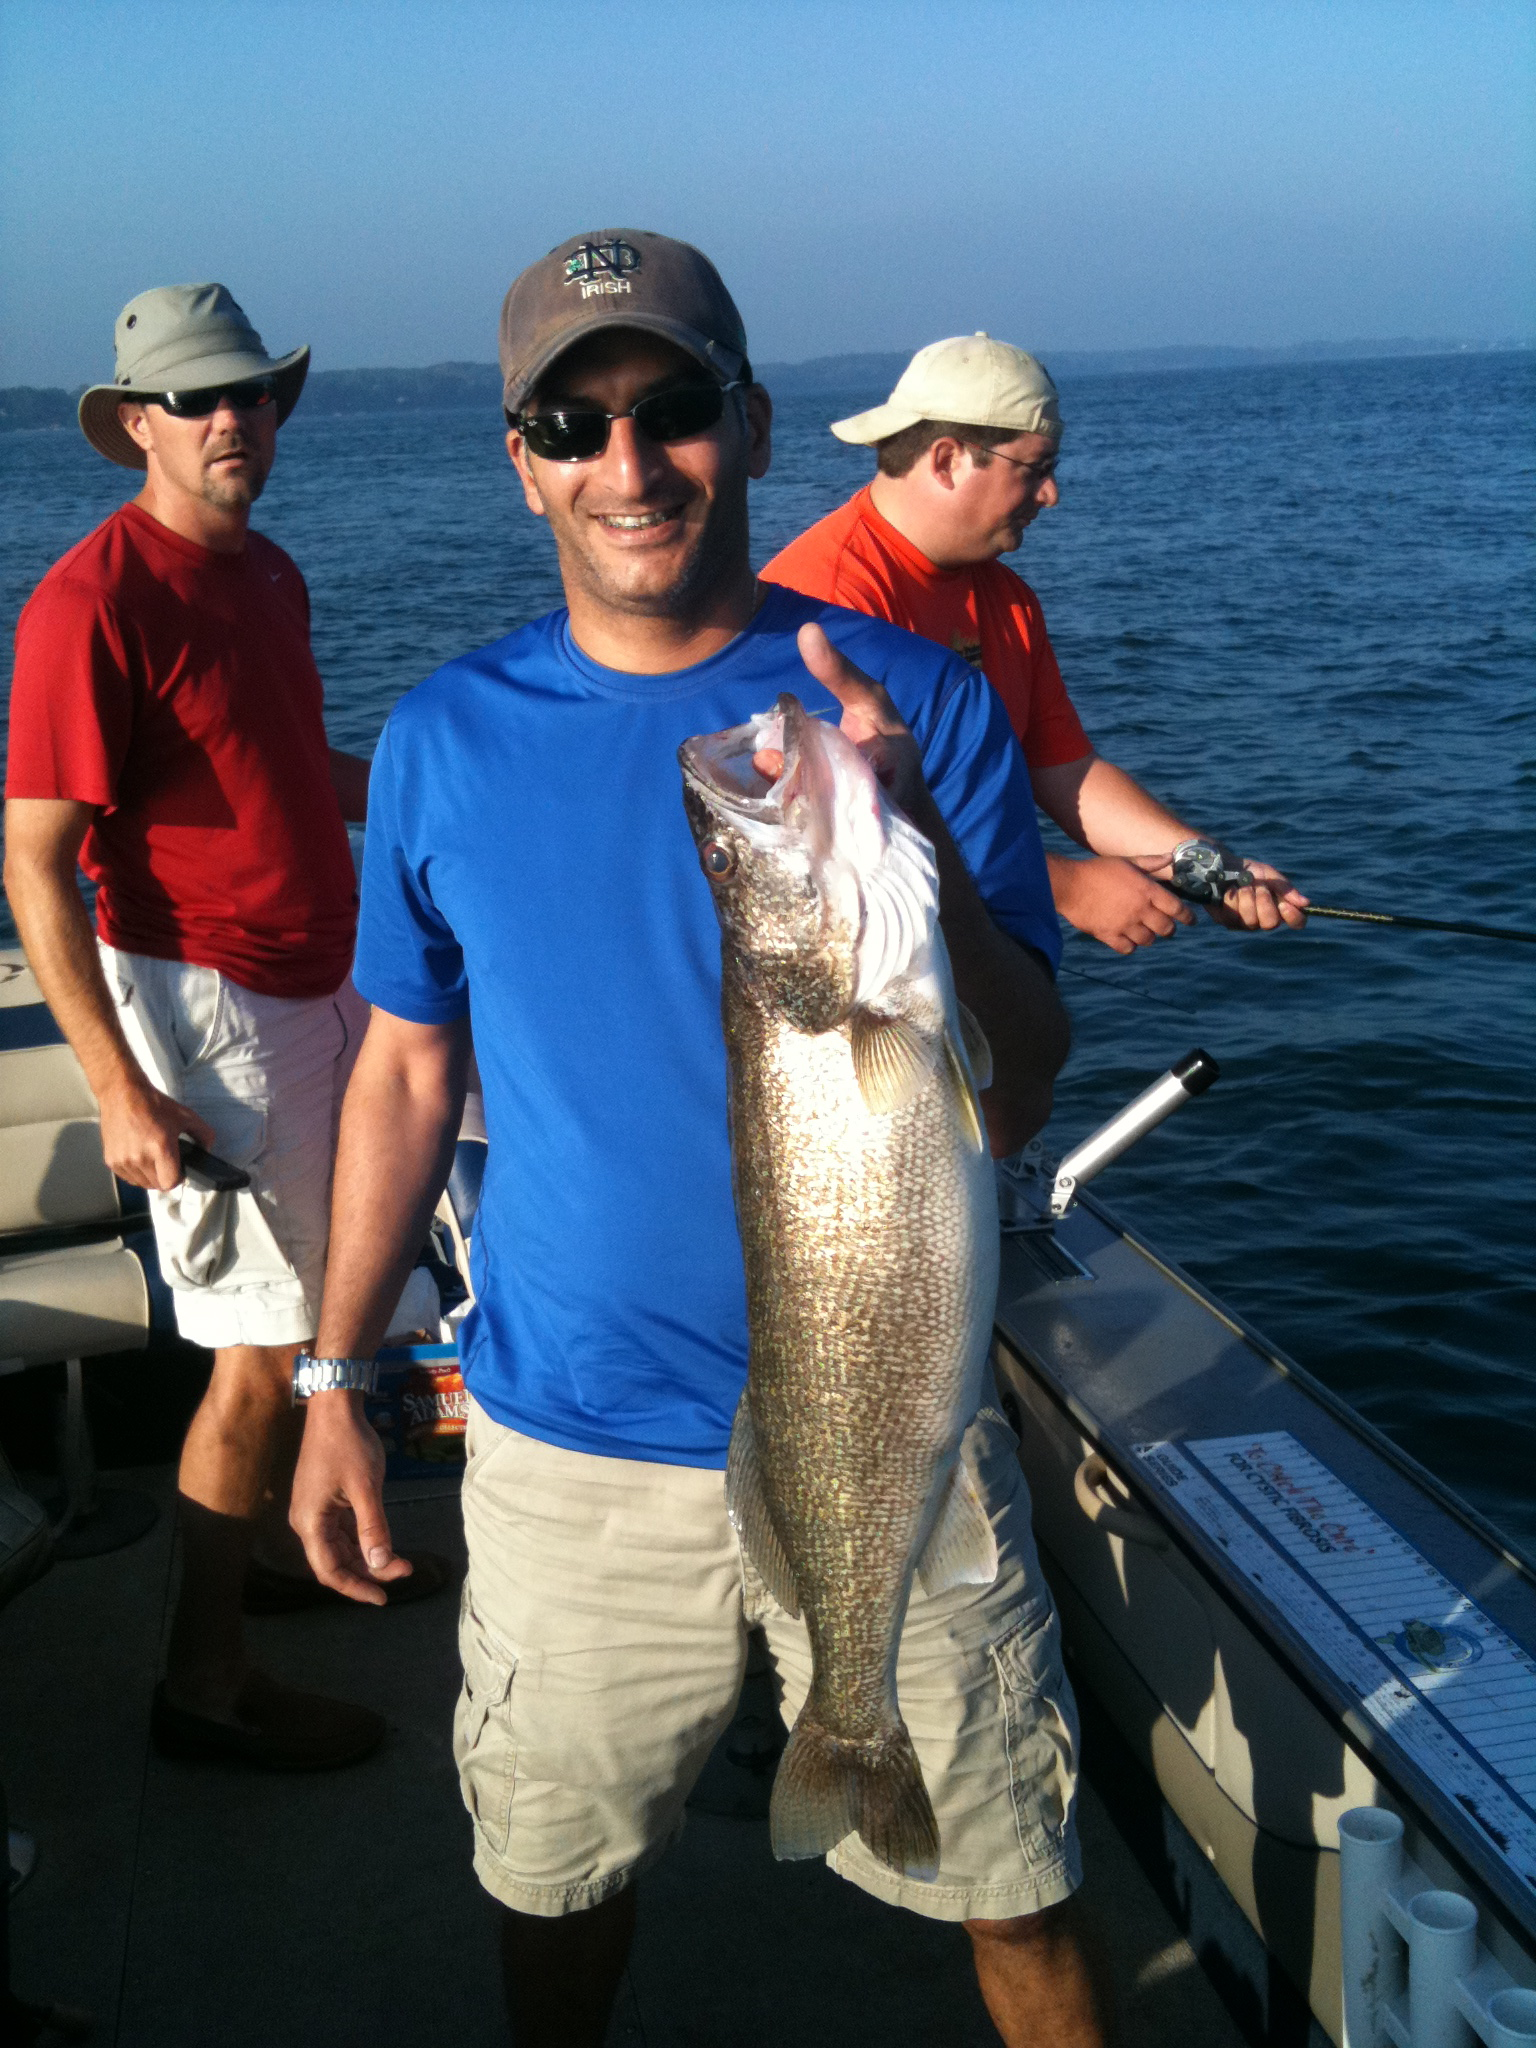 Lake erie lake ontario fishing charters salmon trout for Lake erie fishing charters